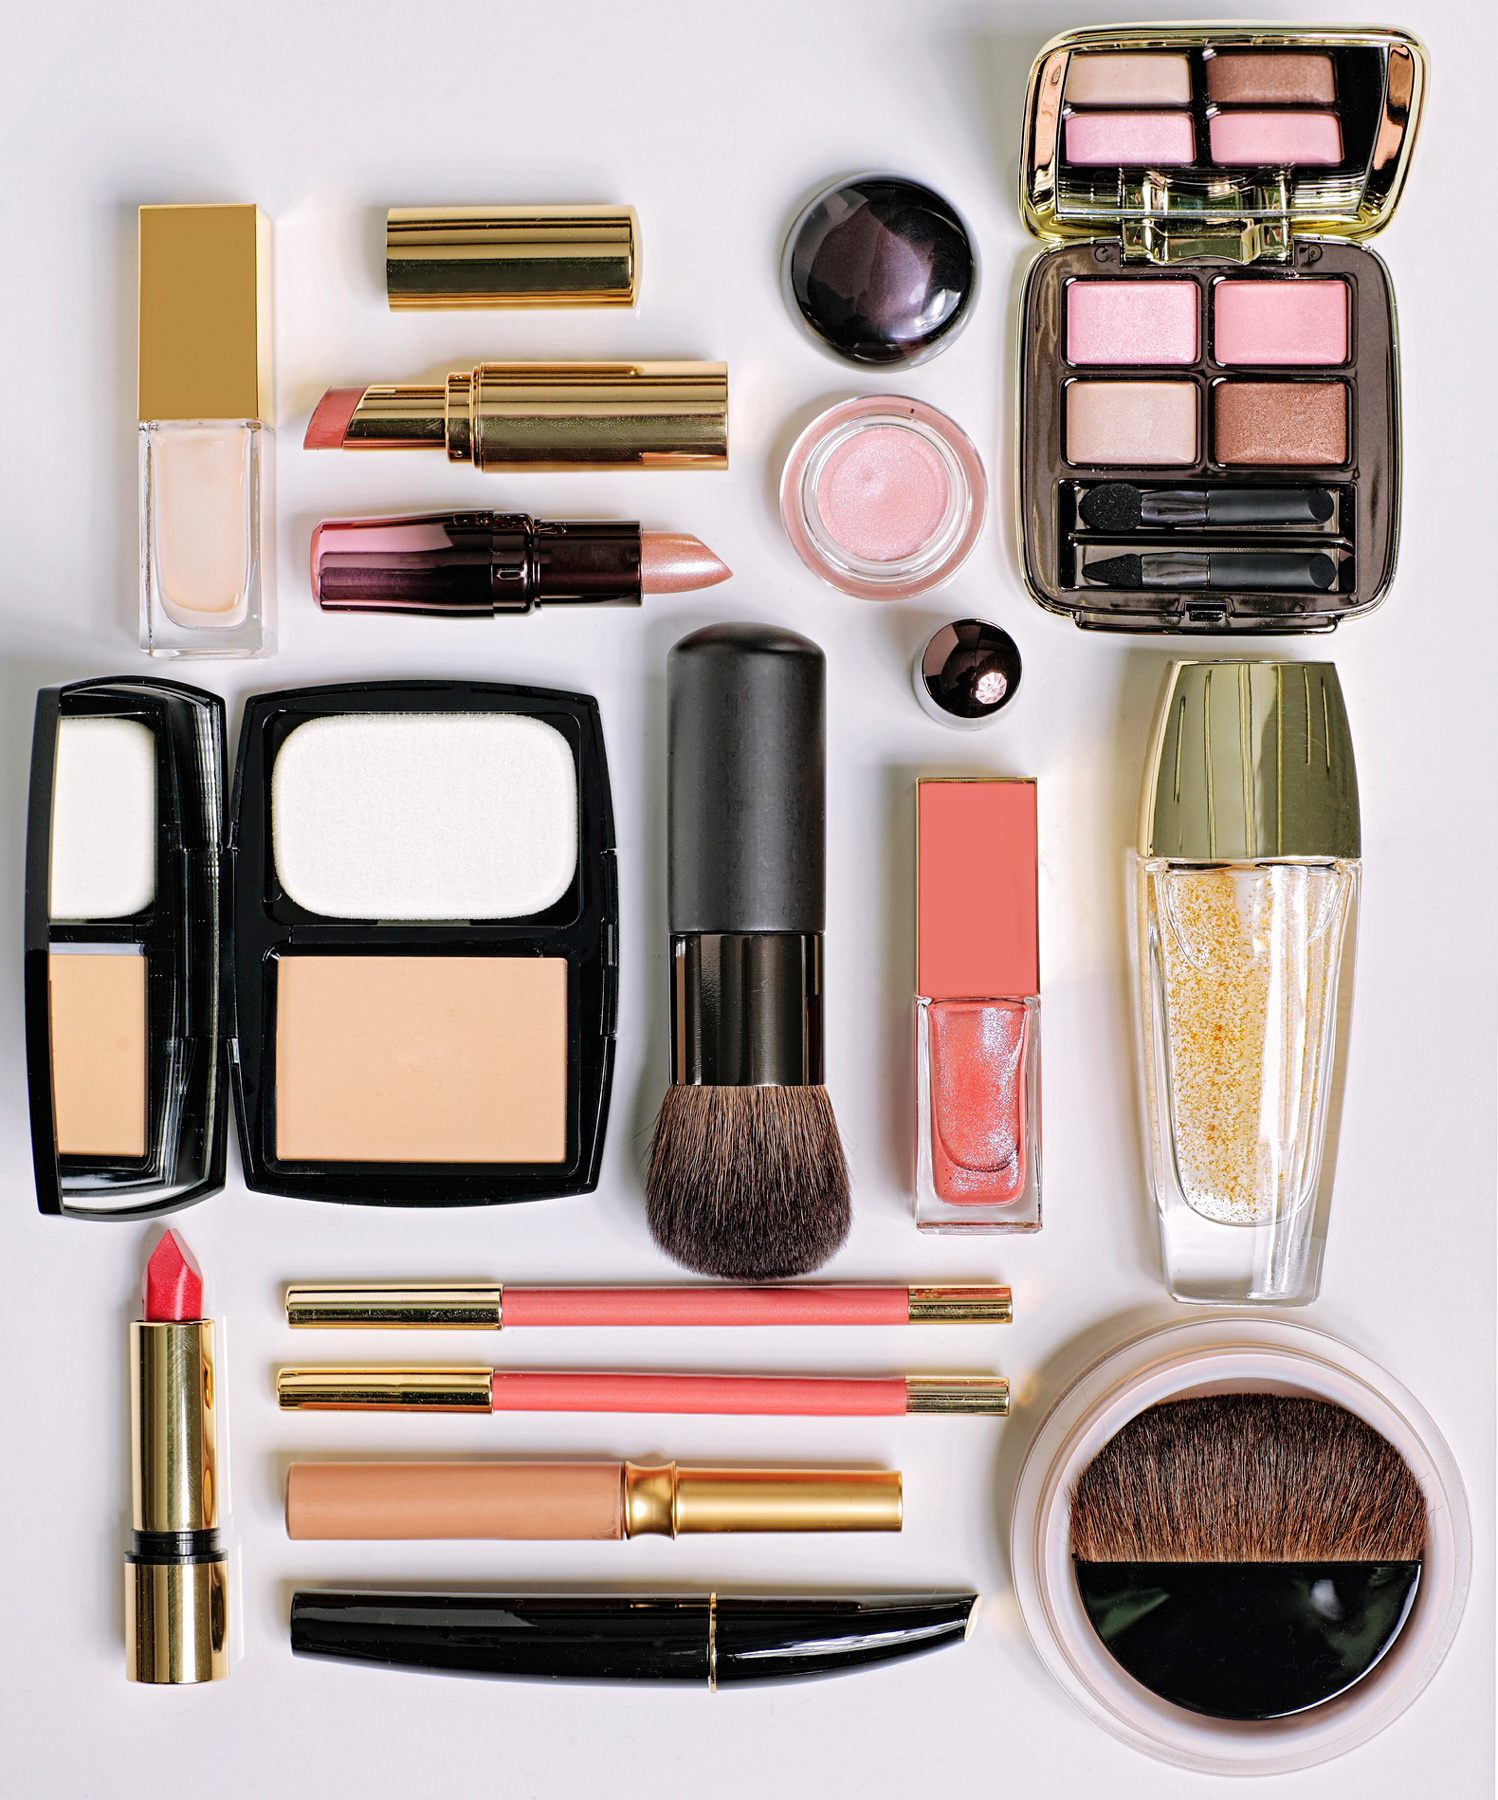 How to Organize Your Beauty Products - Step 1: Clean Out Your Beauty Collection